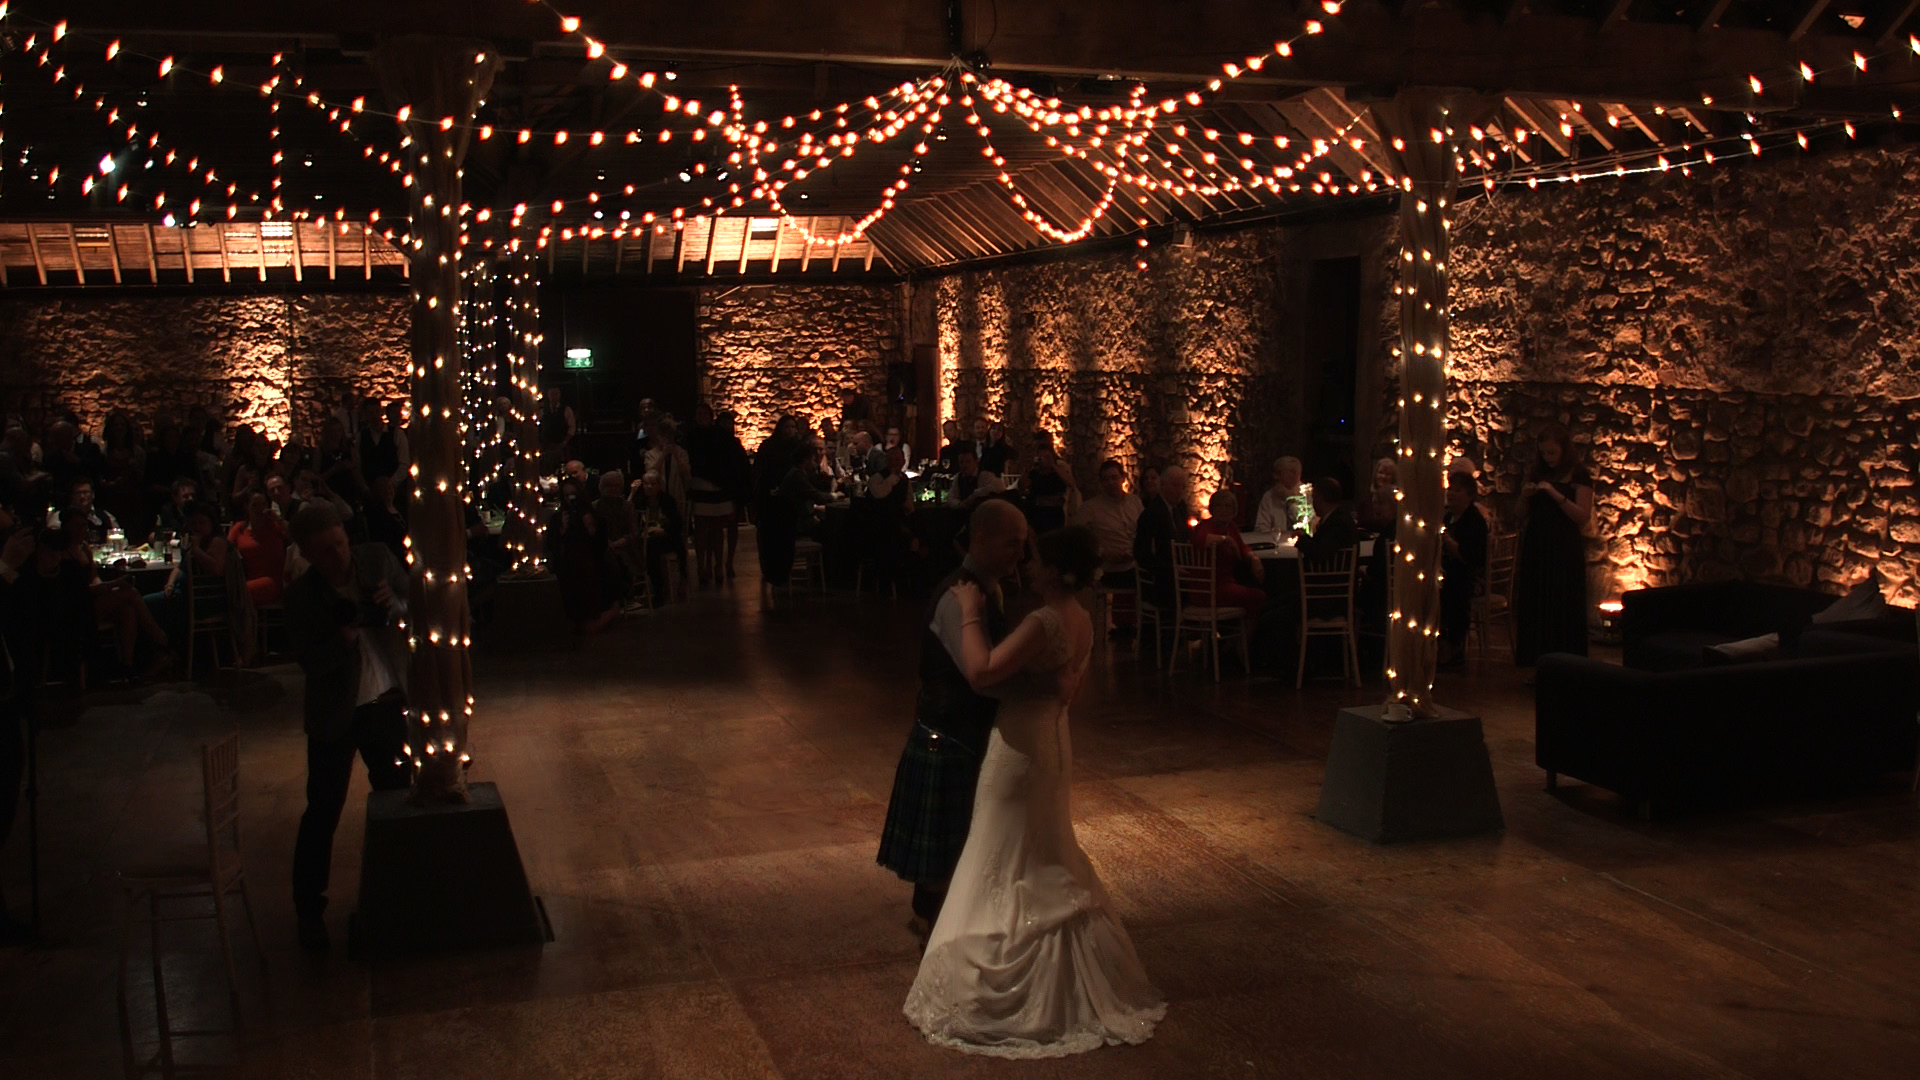 Wedding Venues In Scotland Kinkell Byre A Nicely Converted Farm Building The Coast Beautiful VenuesSt AndrewsWedding